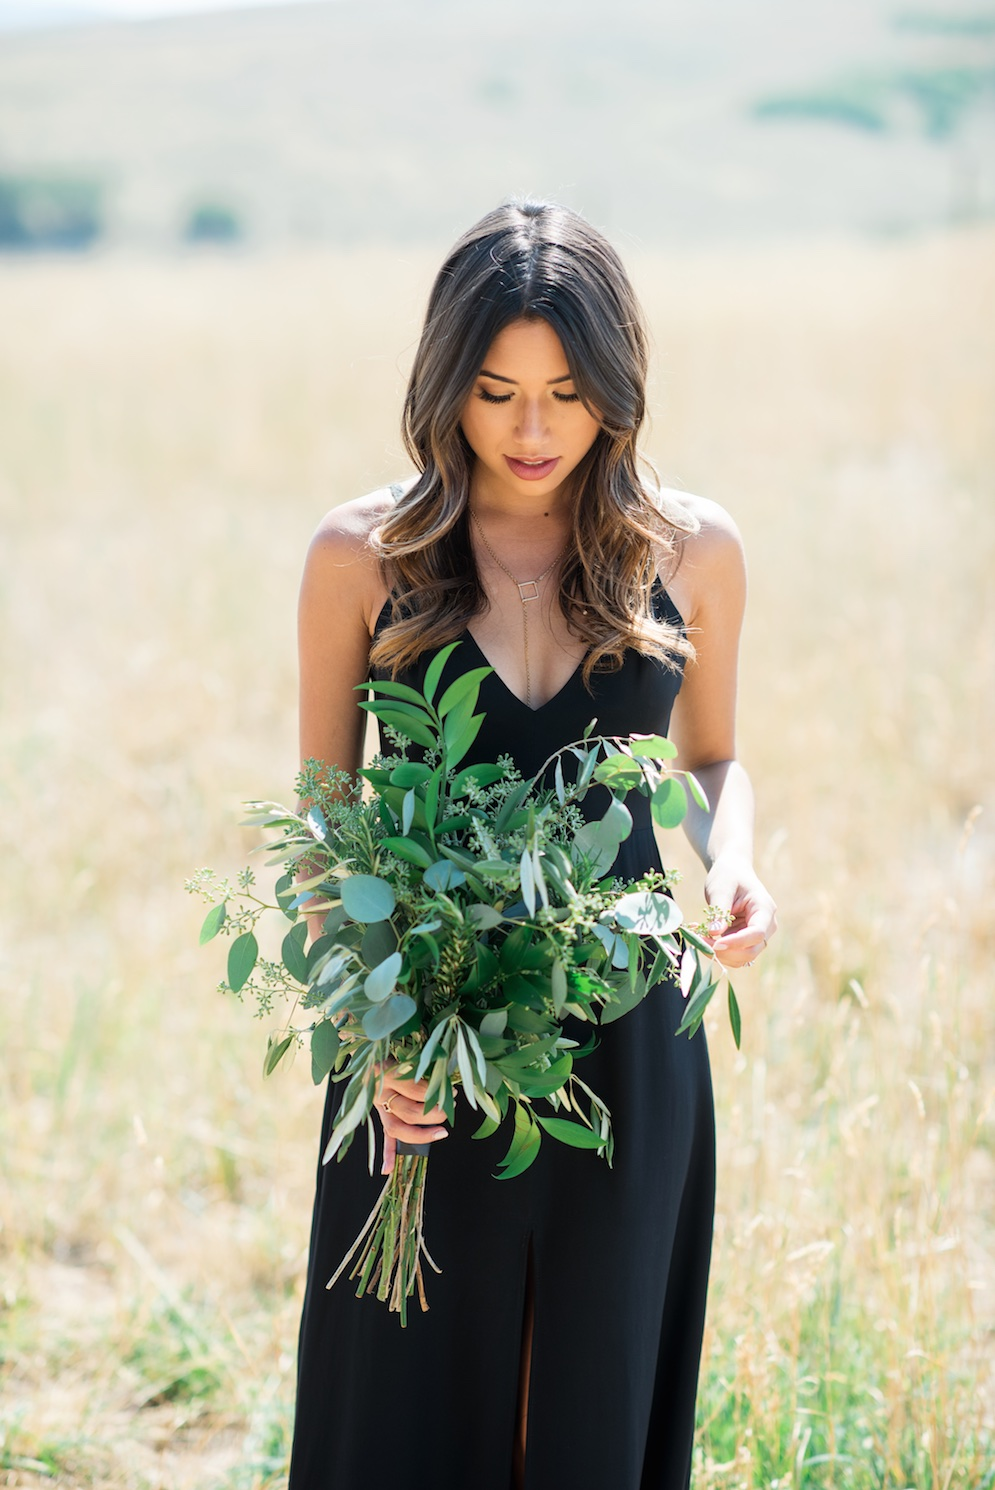 Tag Ranch Destination Park City Utah Wedding Flowers Calie Rose pantone color of the year greenery wedding flower bouquet all greenery bouquet black bridesmaid dress